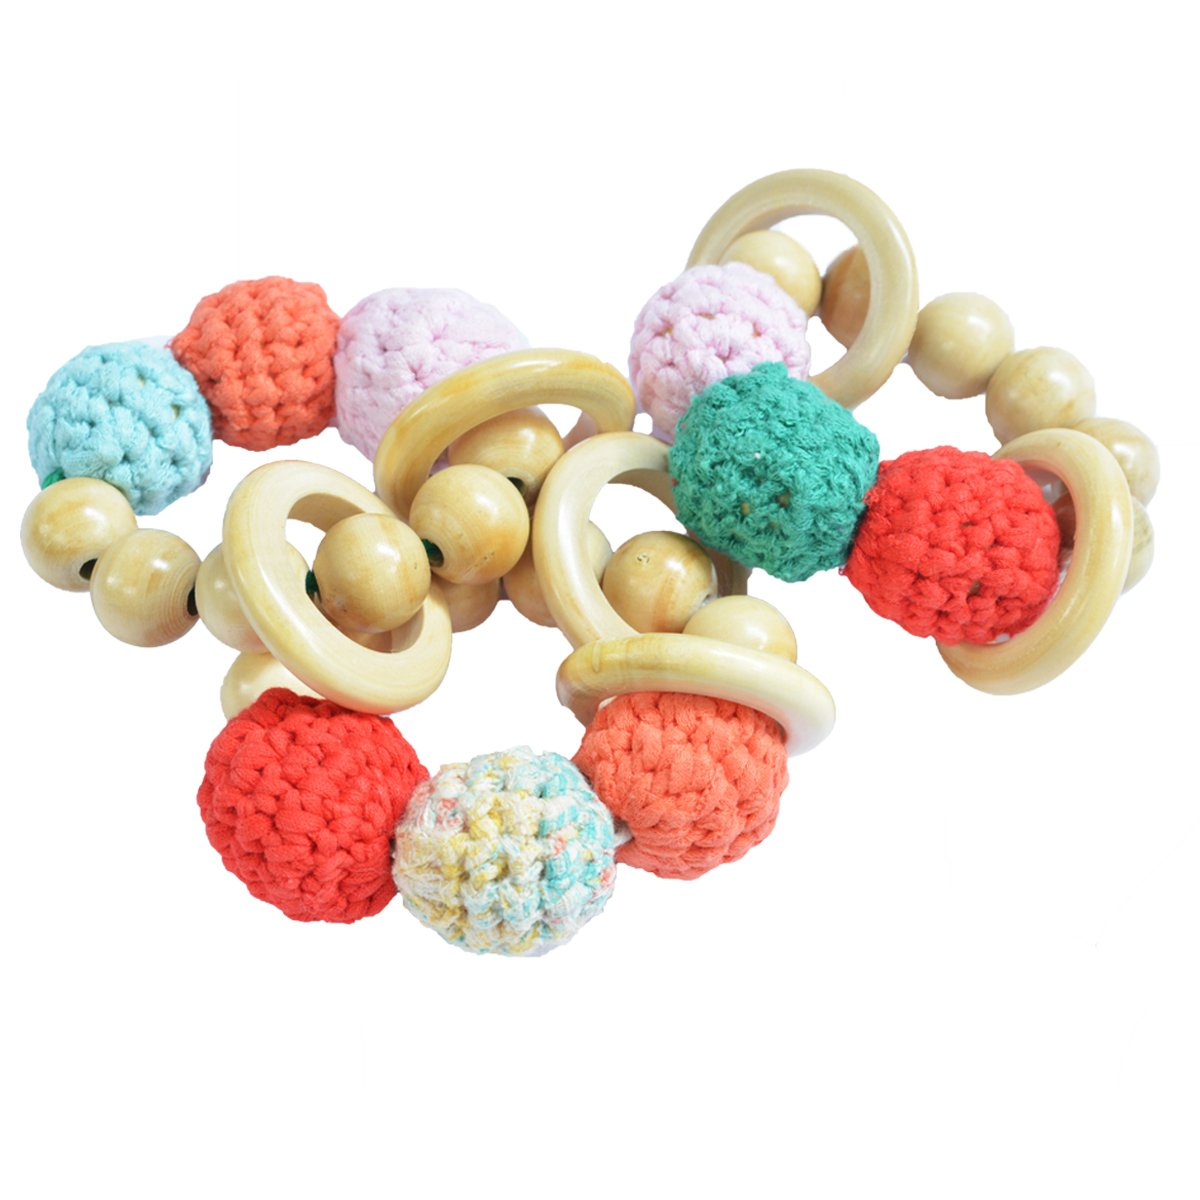 Shumee Wooden Soft Crochet Beads Chew Toy, Saliva-Proof Rattle Rings & Teether for Babies | Sensory Toy|100% Safe, Natural & Eco-Friendly |Discover Sounds| 0 - 1 Year